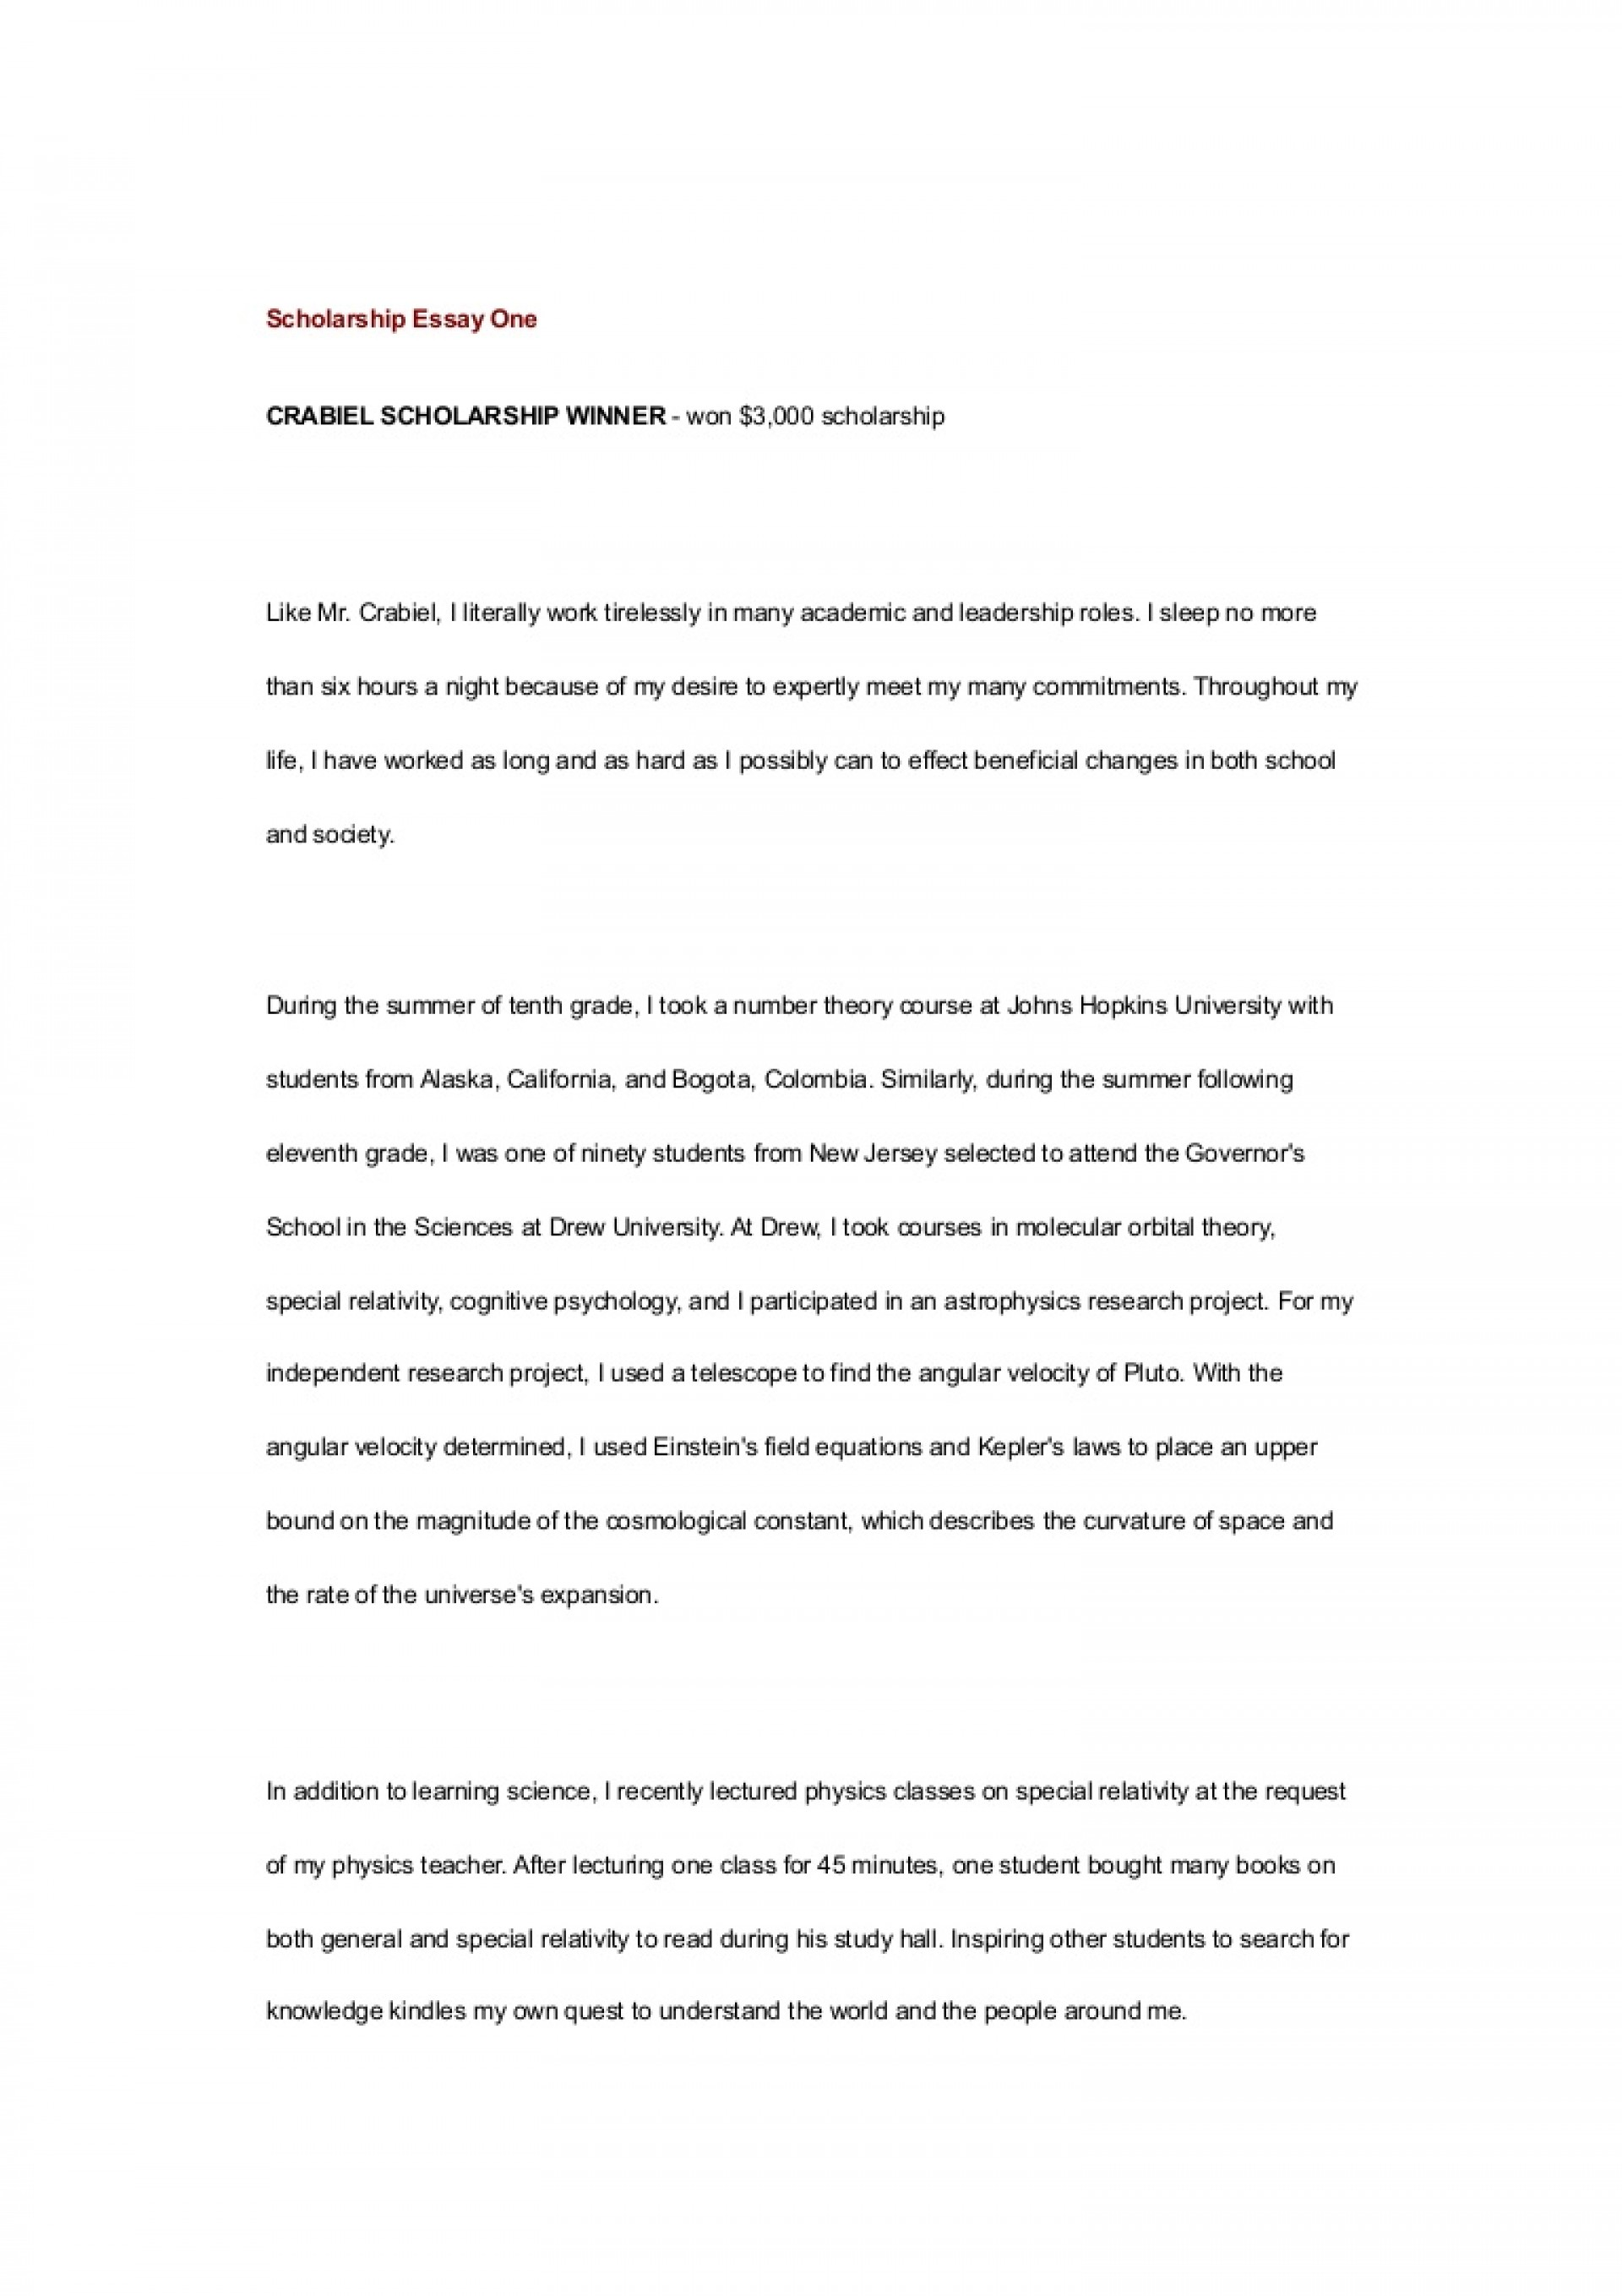 005 Essay Example Scholarship Template Scholarshipessayone Phpapp01 Thumbnail Stunning Structure Format Examples Guidelines 1920